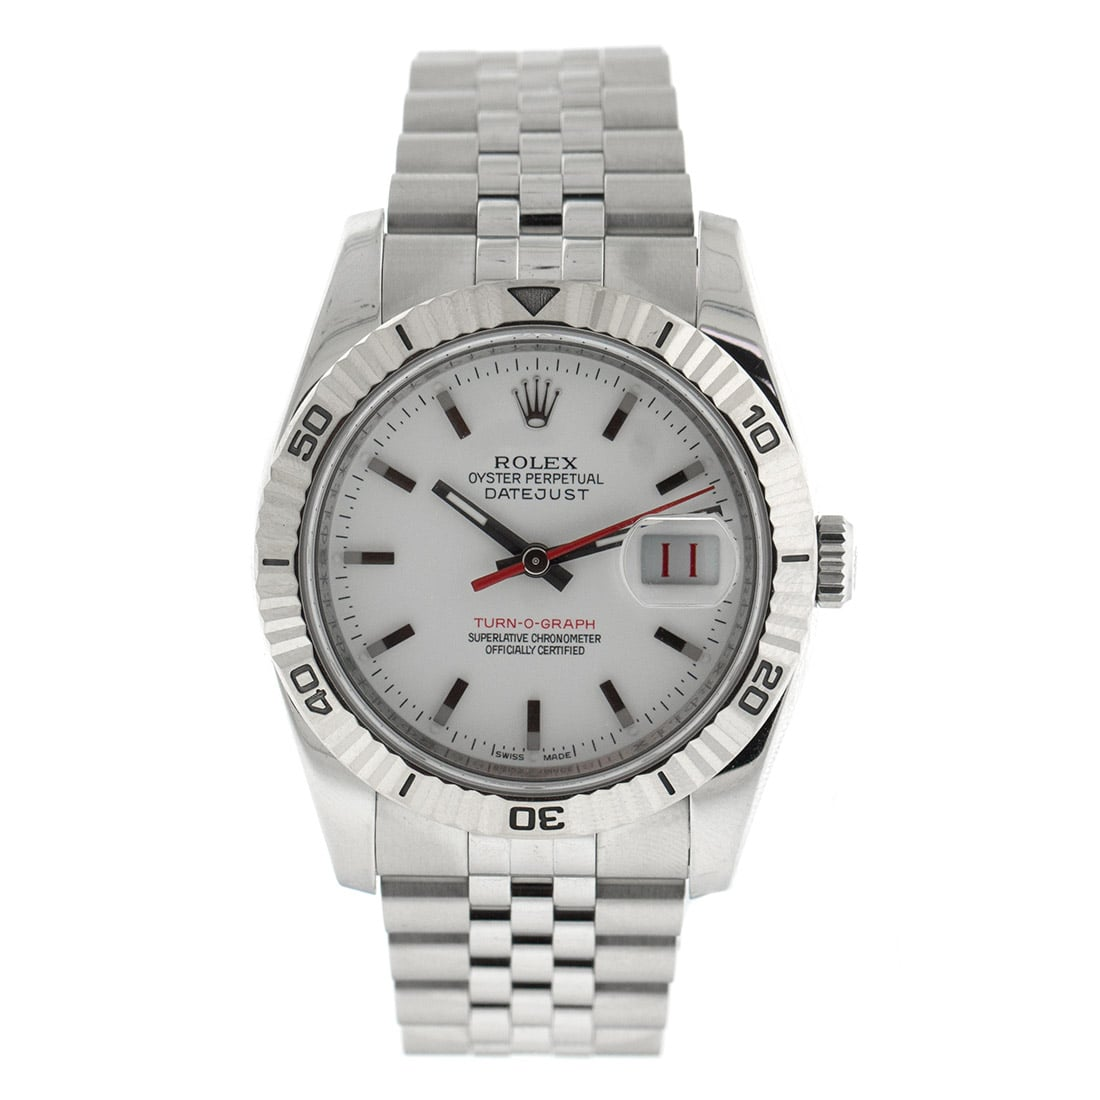 Rolex DateJust Turn-O-Graph 116264 Watch